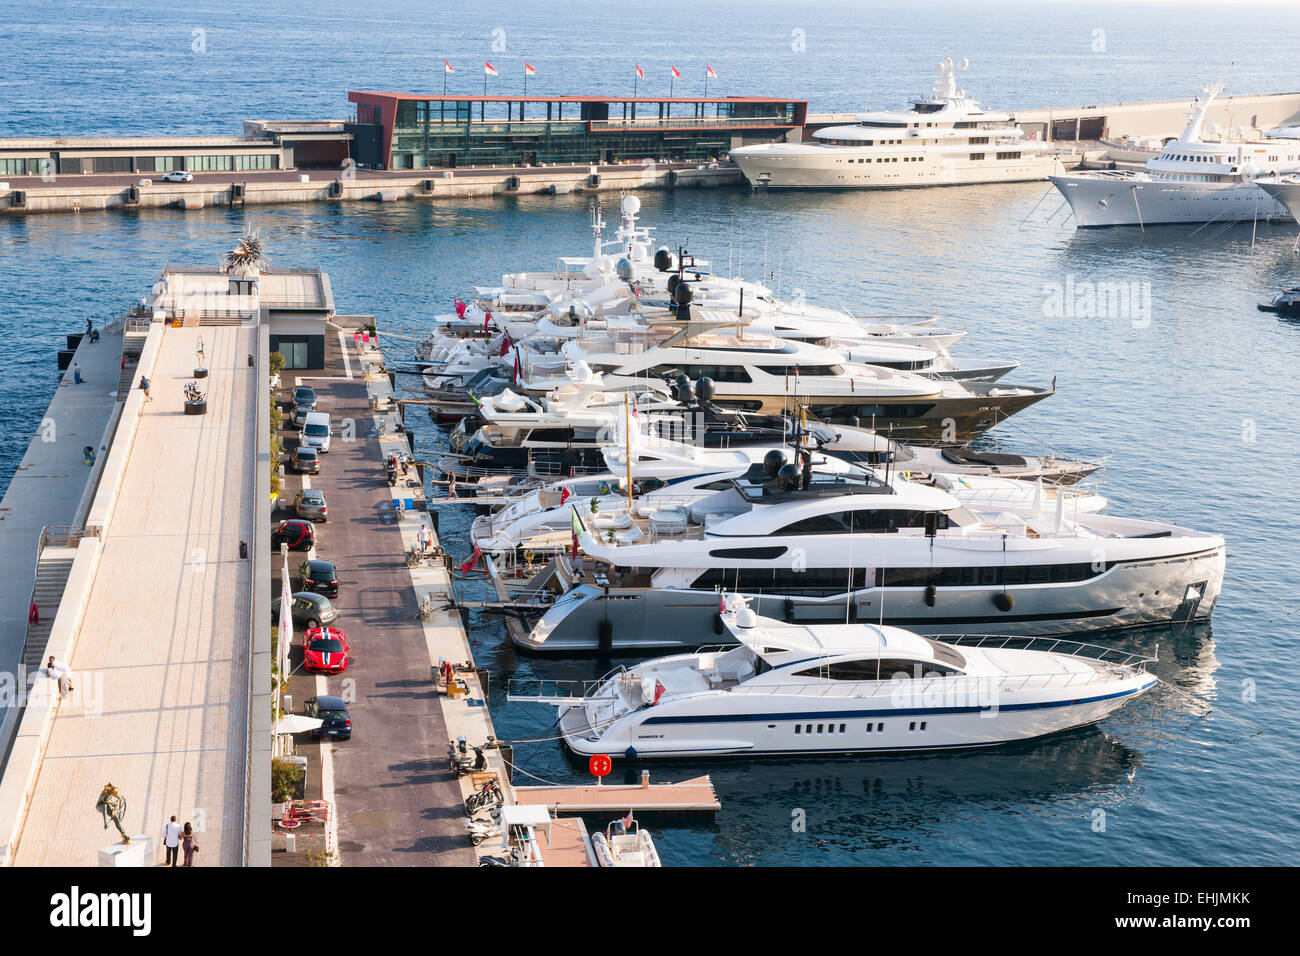 MONTE CARLO, MONACO - OCTOBER 3, 2014: Luxury yachts docked at pier of port Hercule in Monaco viewed from seaside - Stock Image